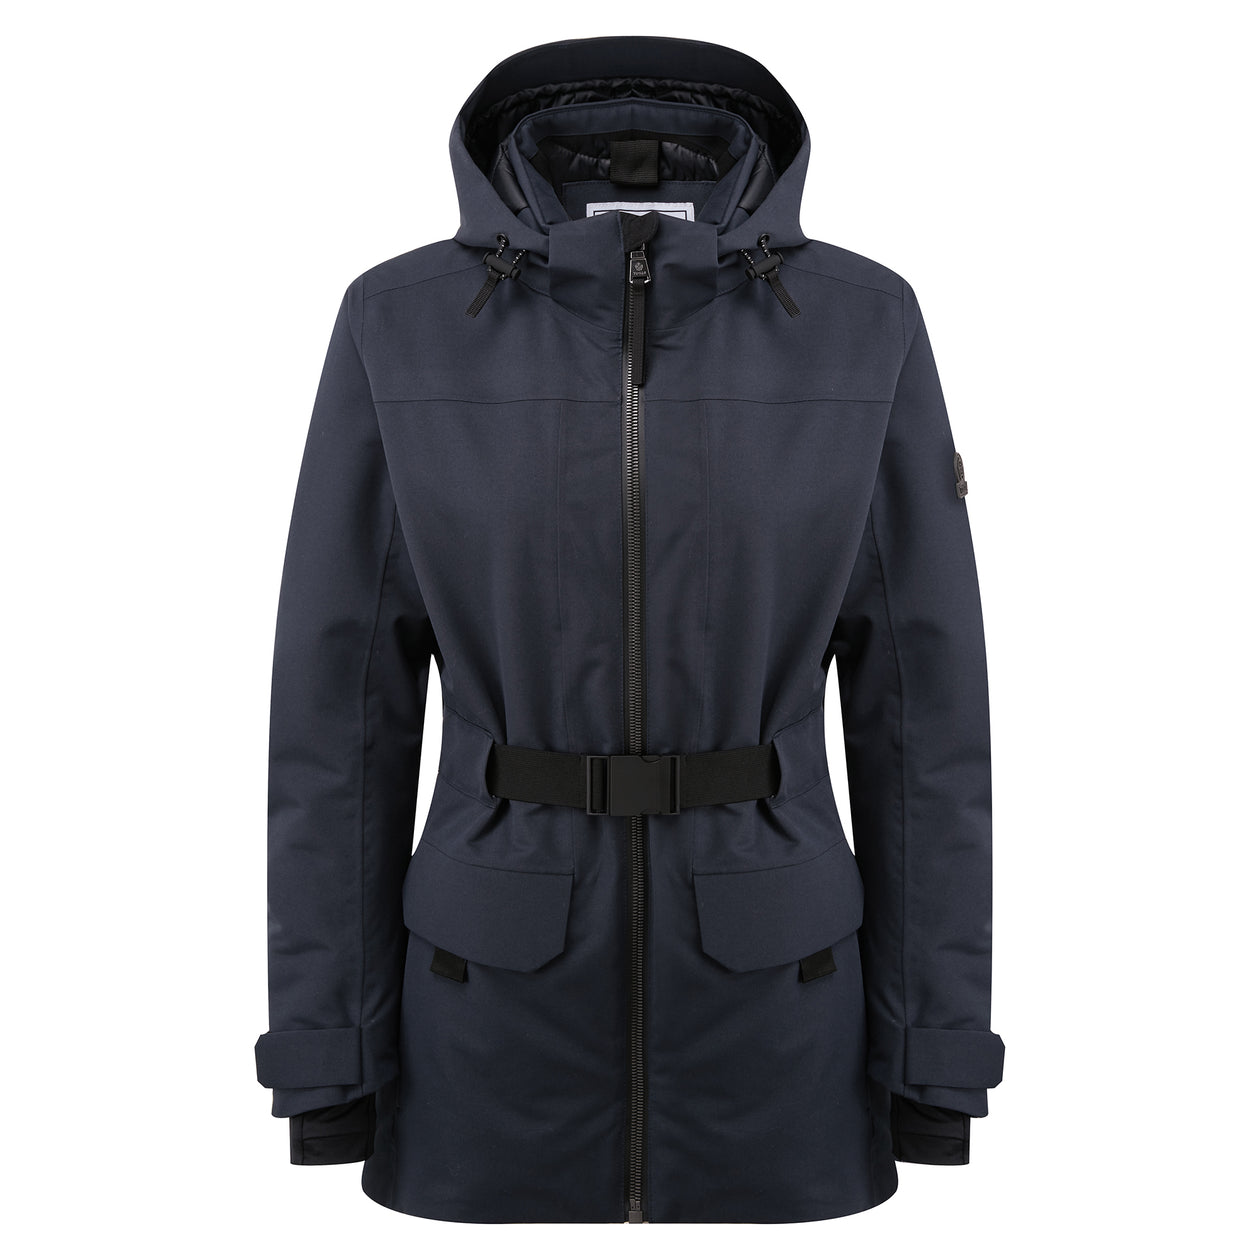 Helmsley Womens Waterproof Ski Jacket - Dark Indigo image 4